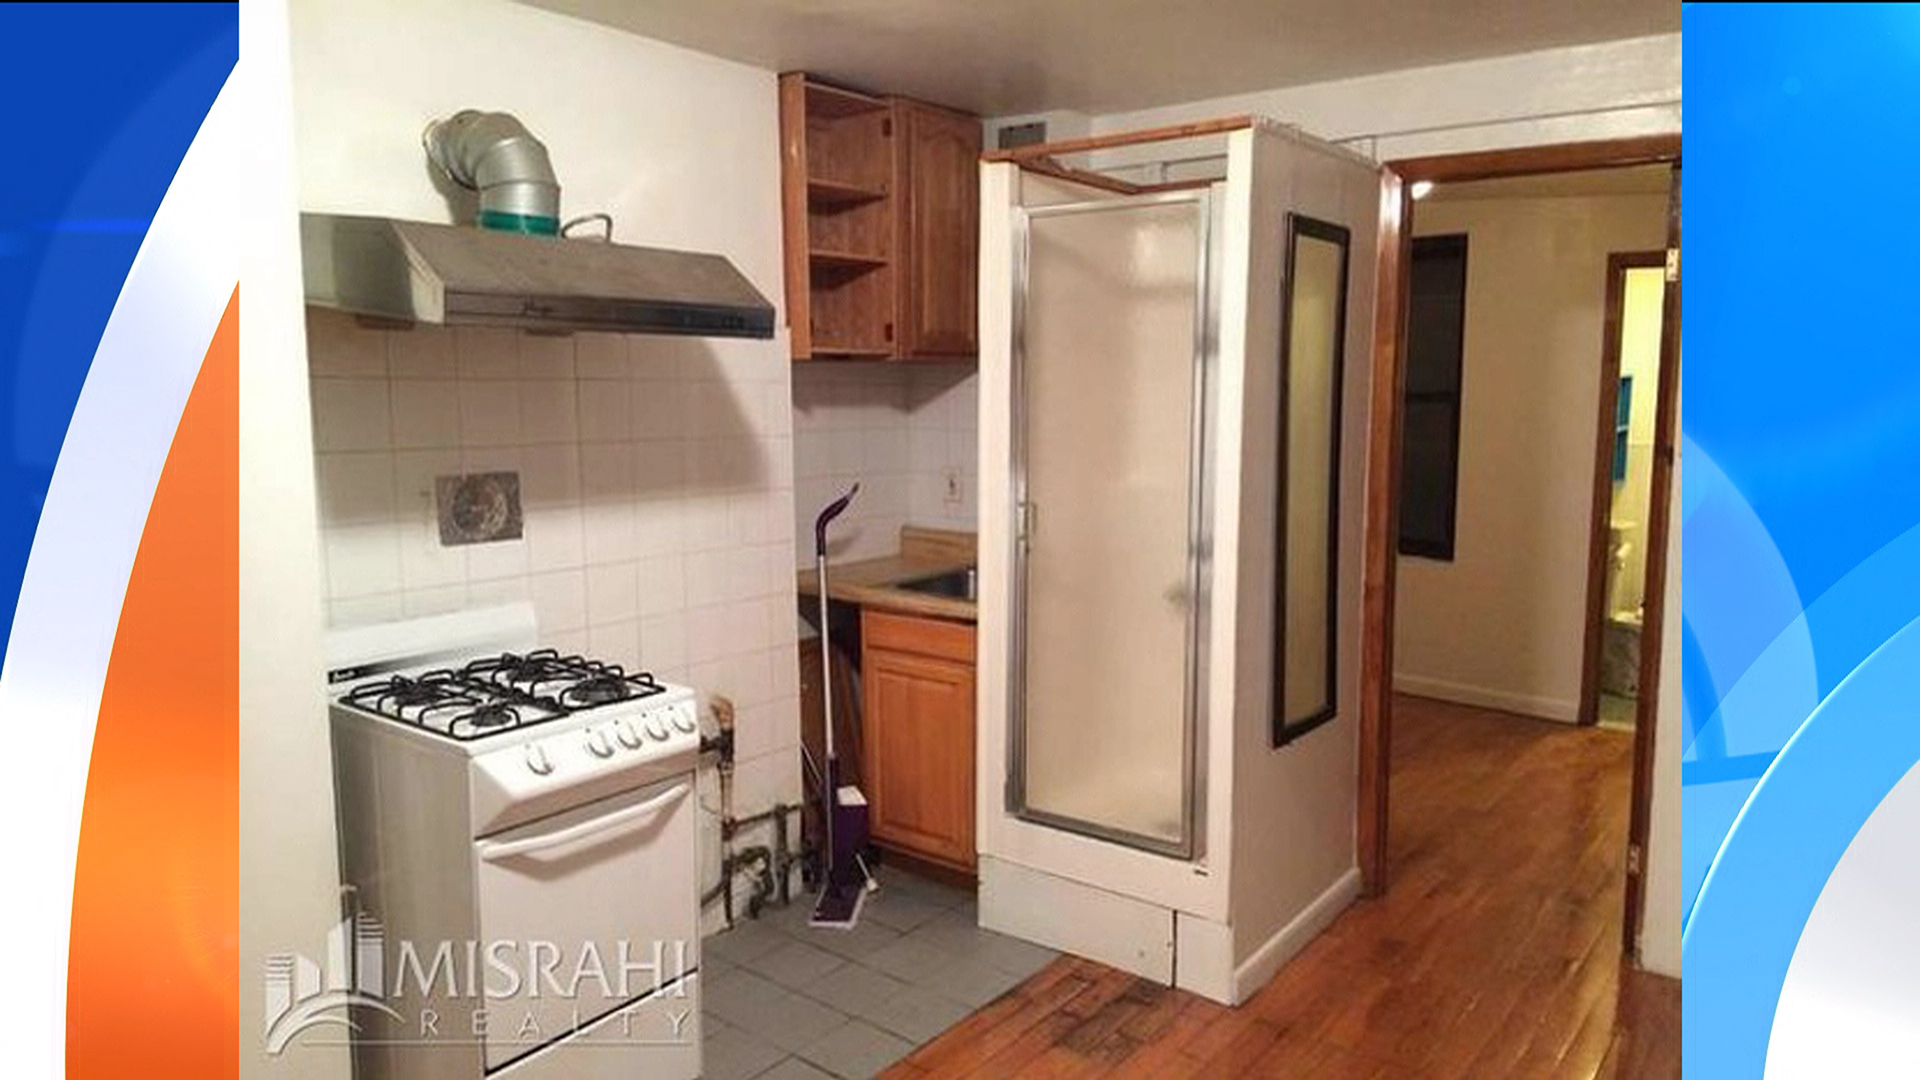 nyc apartment with shower in kitchen renting for 1 795